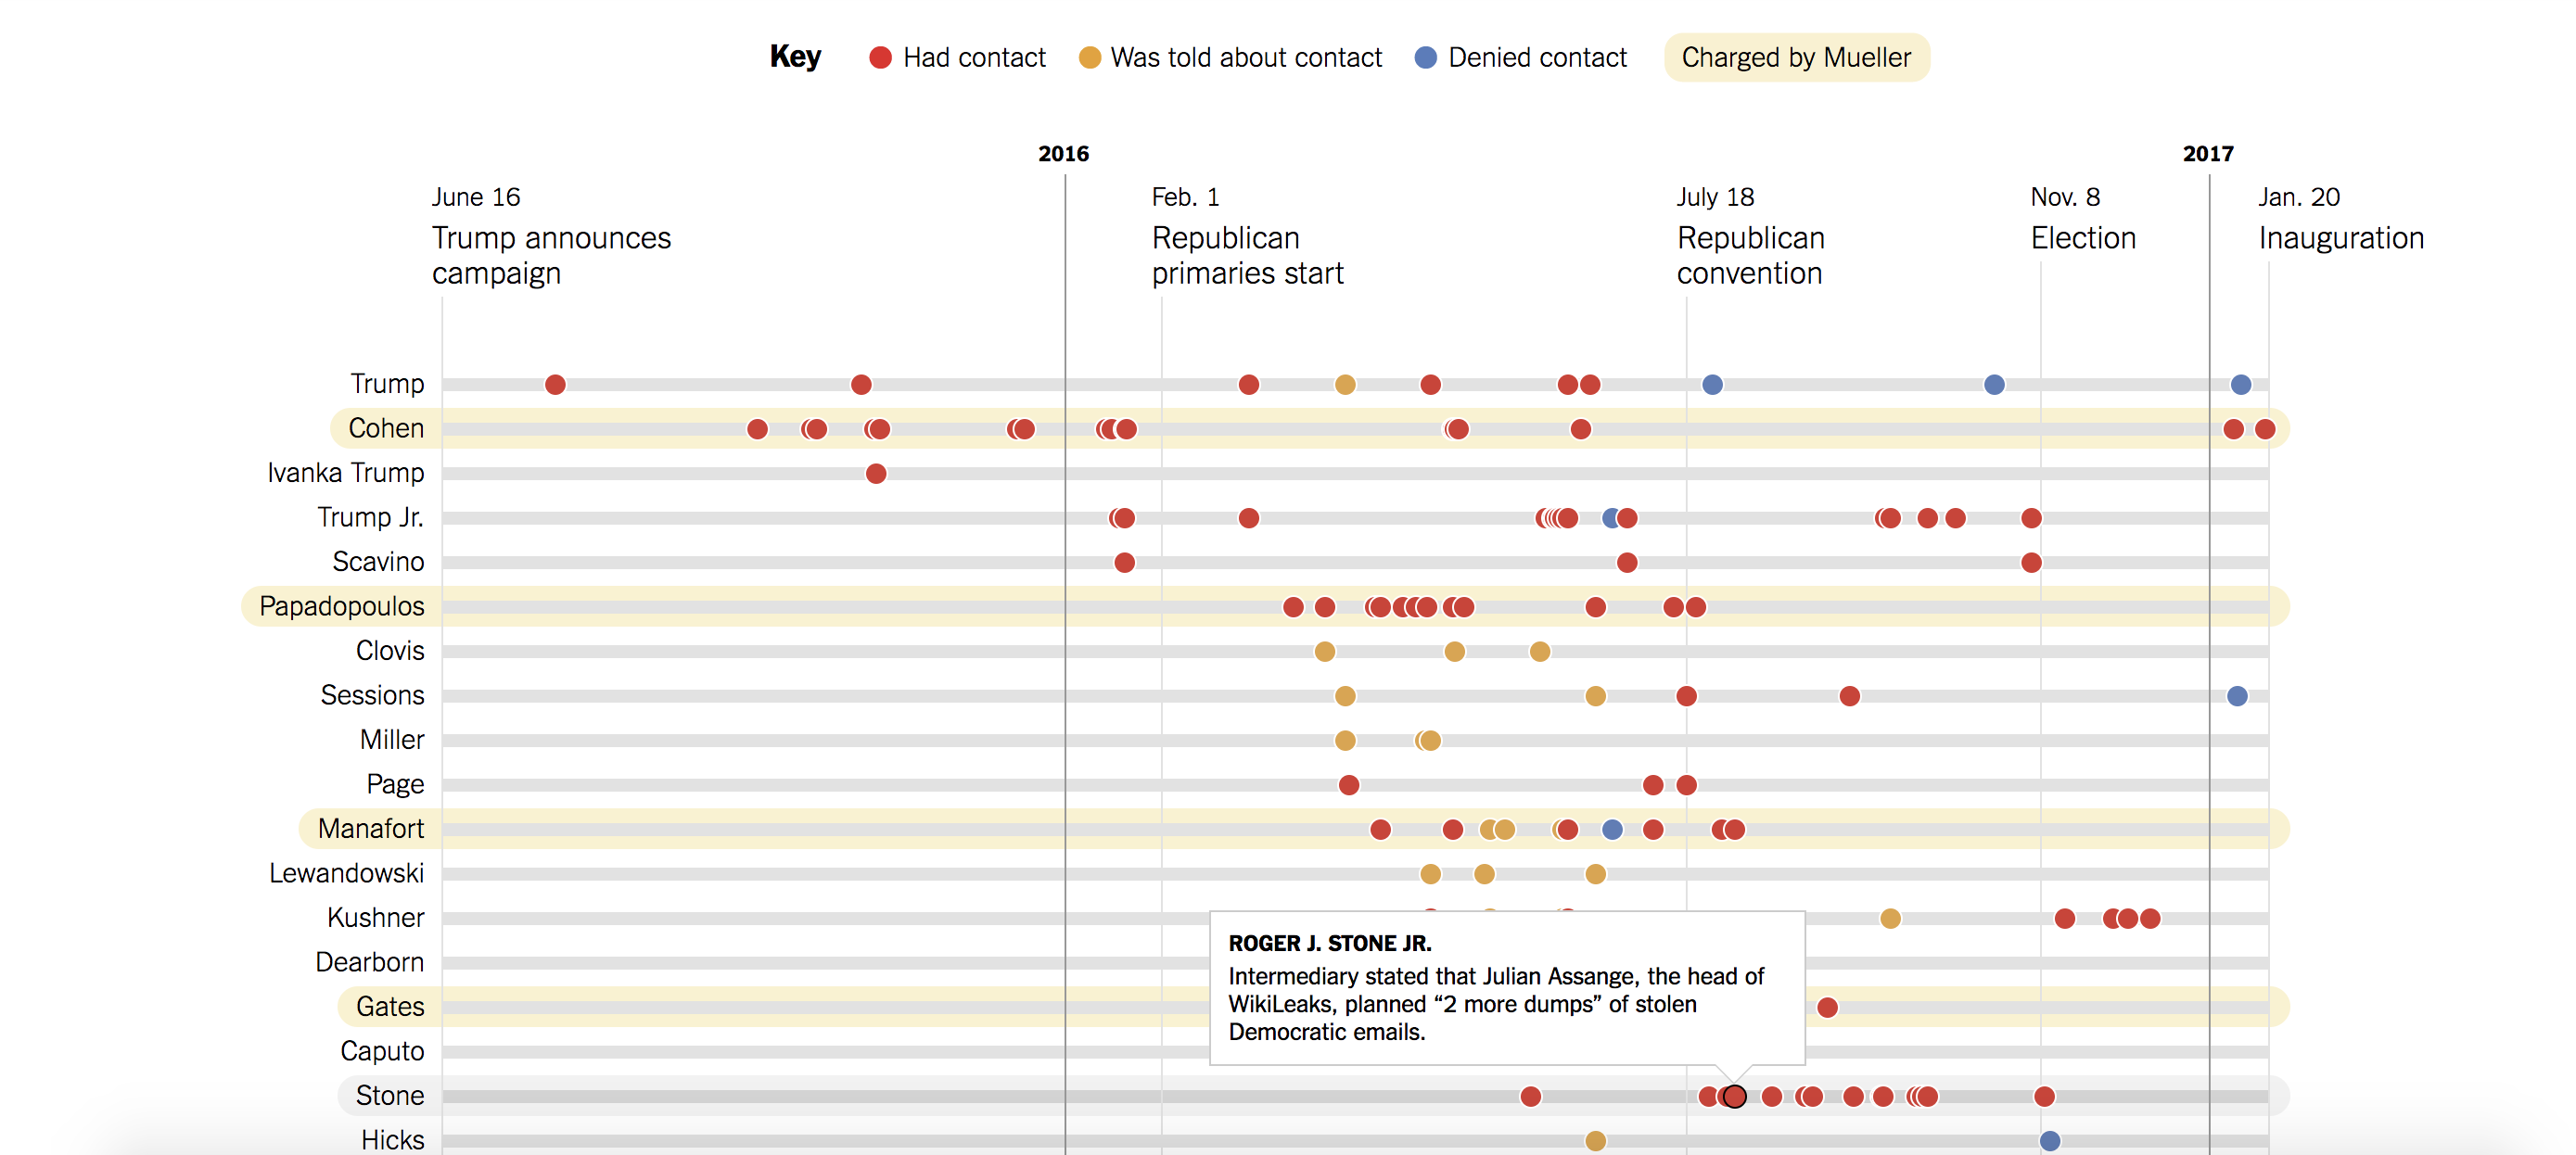 trump-russia-contacts-nytimes